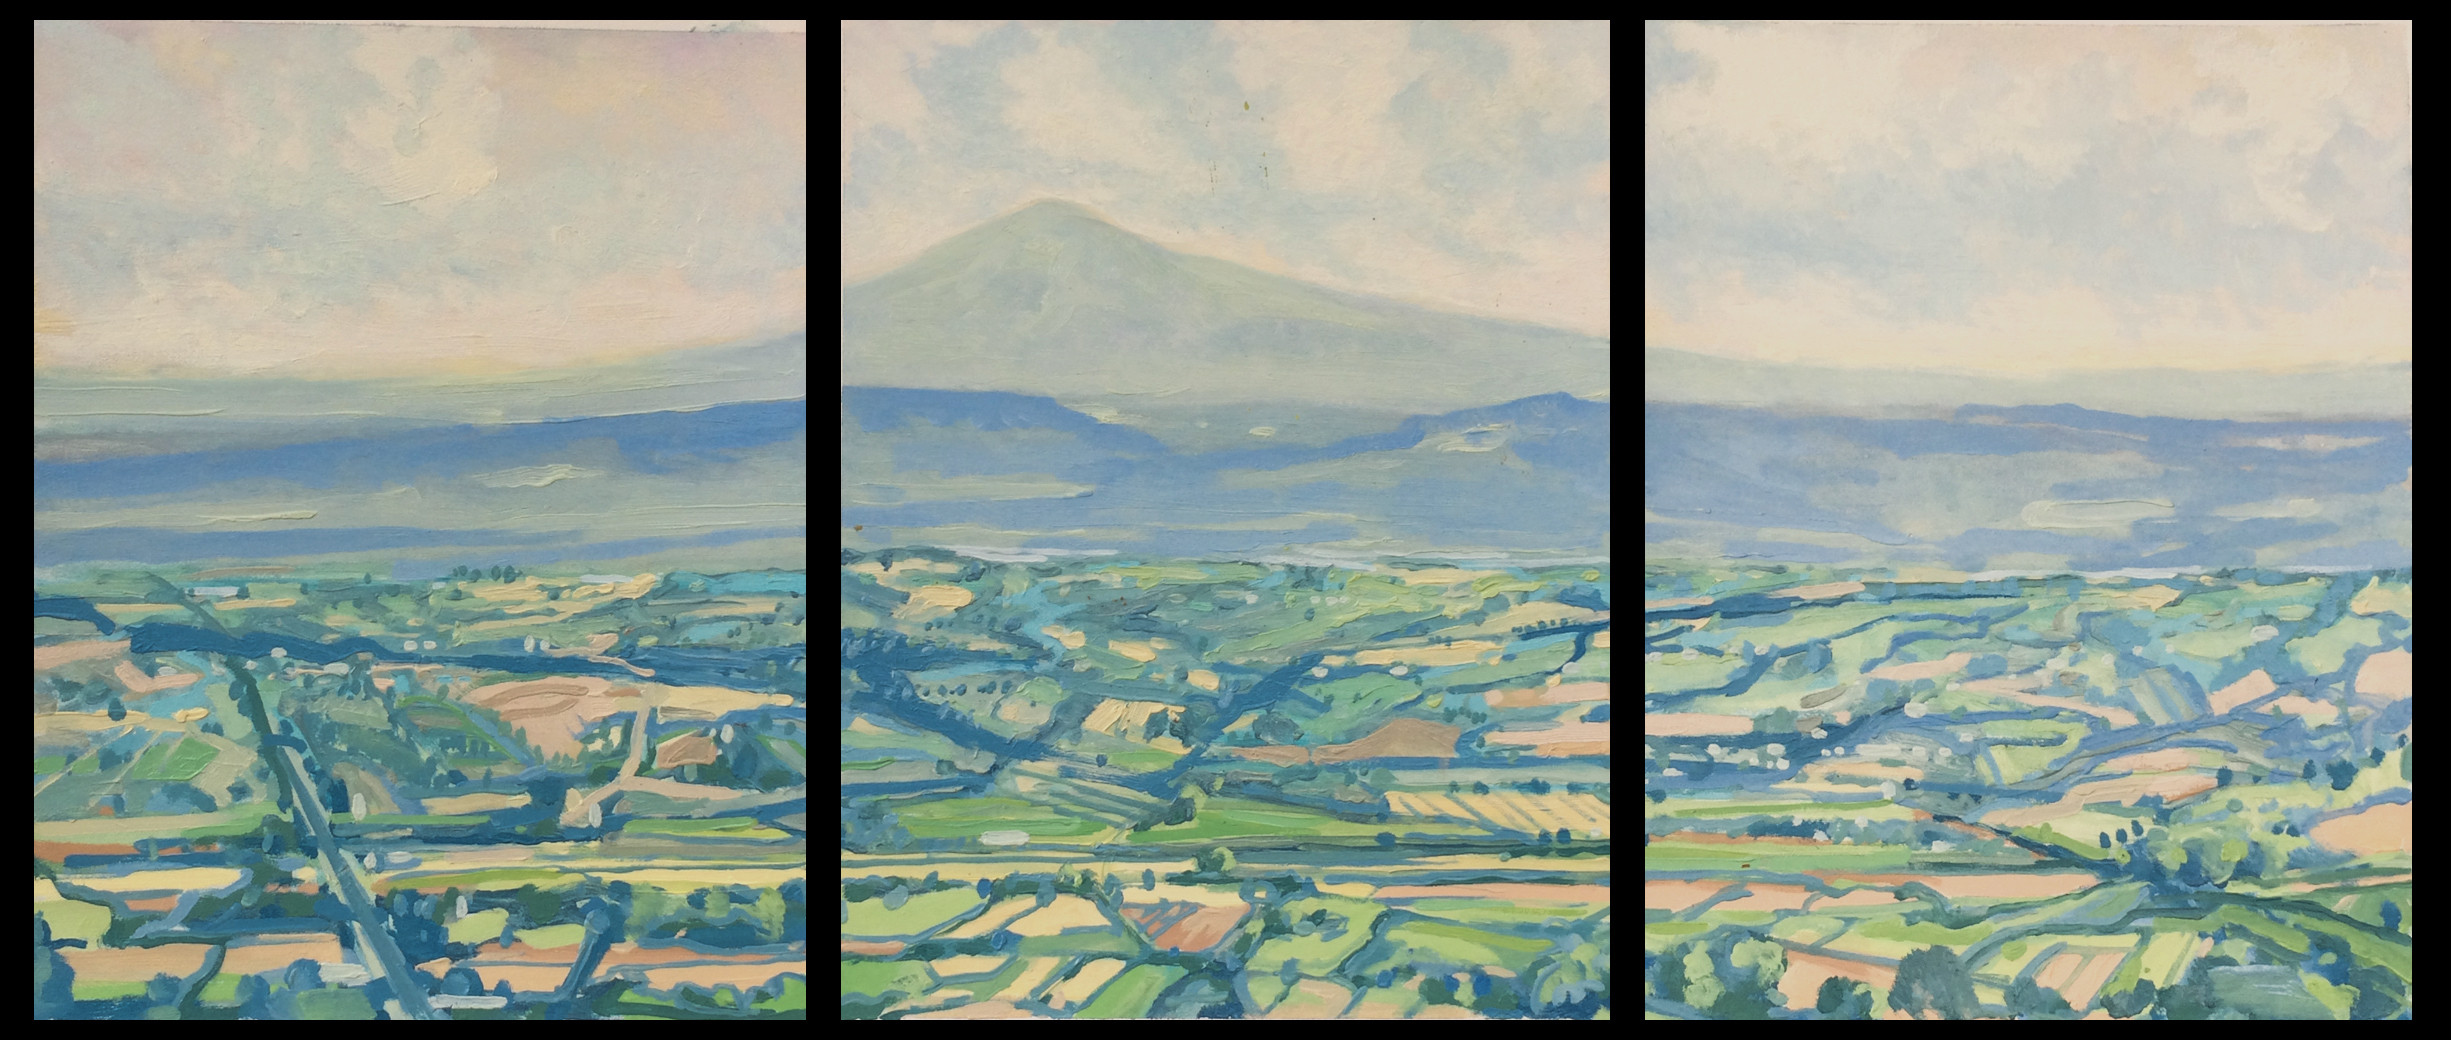 "Paul Reuther; Amiata triptych; 3 panels, each 14"" x 11"" ; 2017;  oil on archival paper on panel"